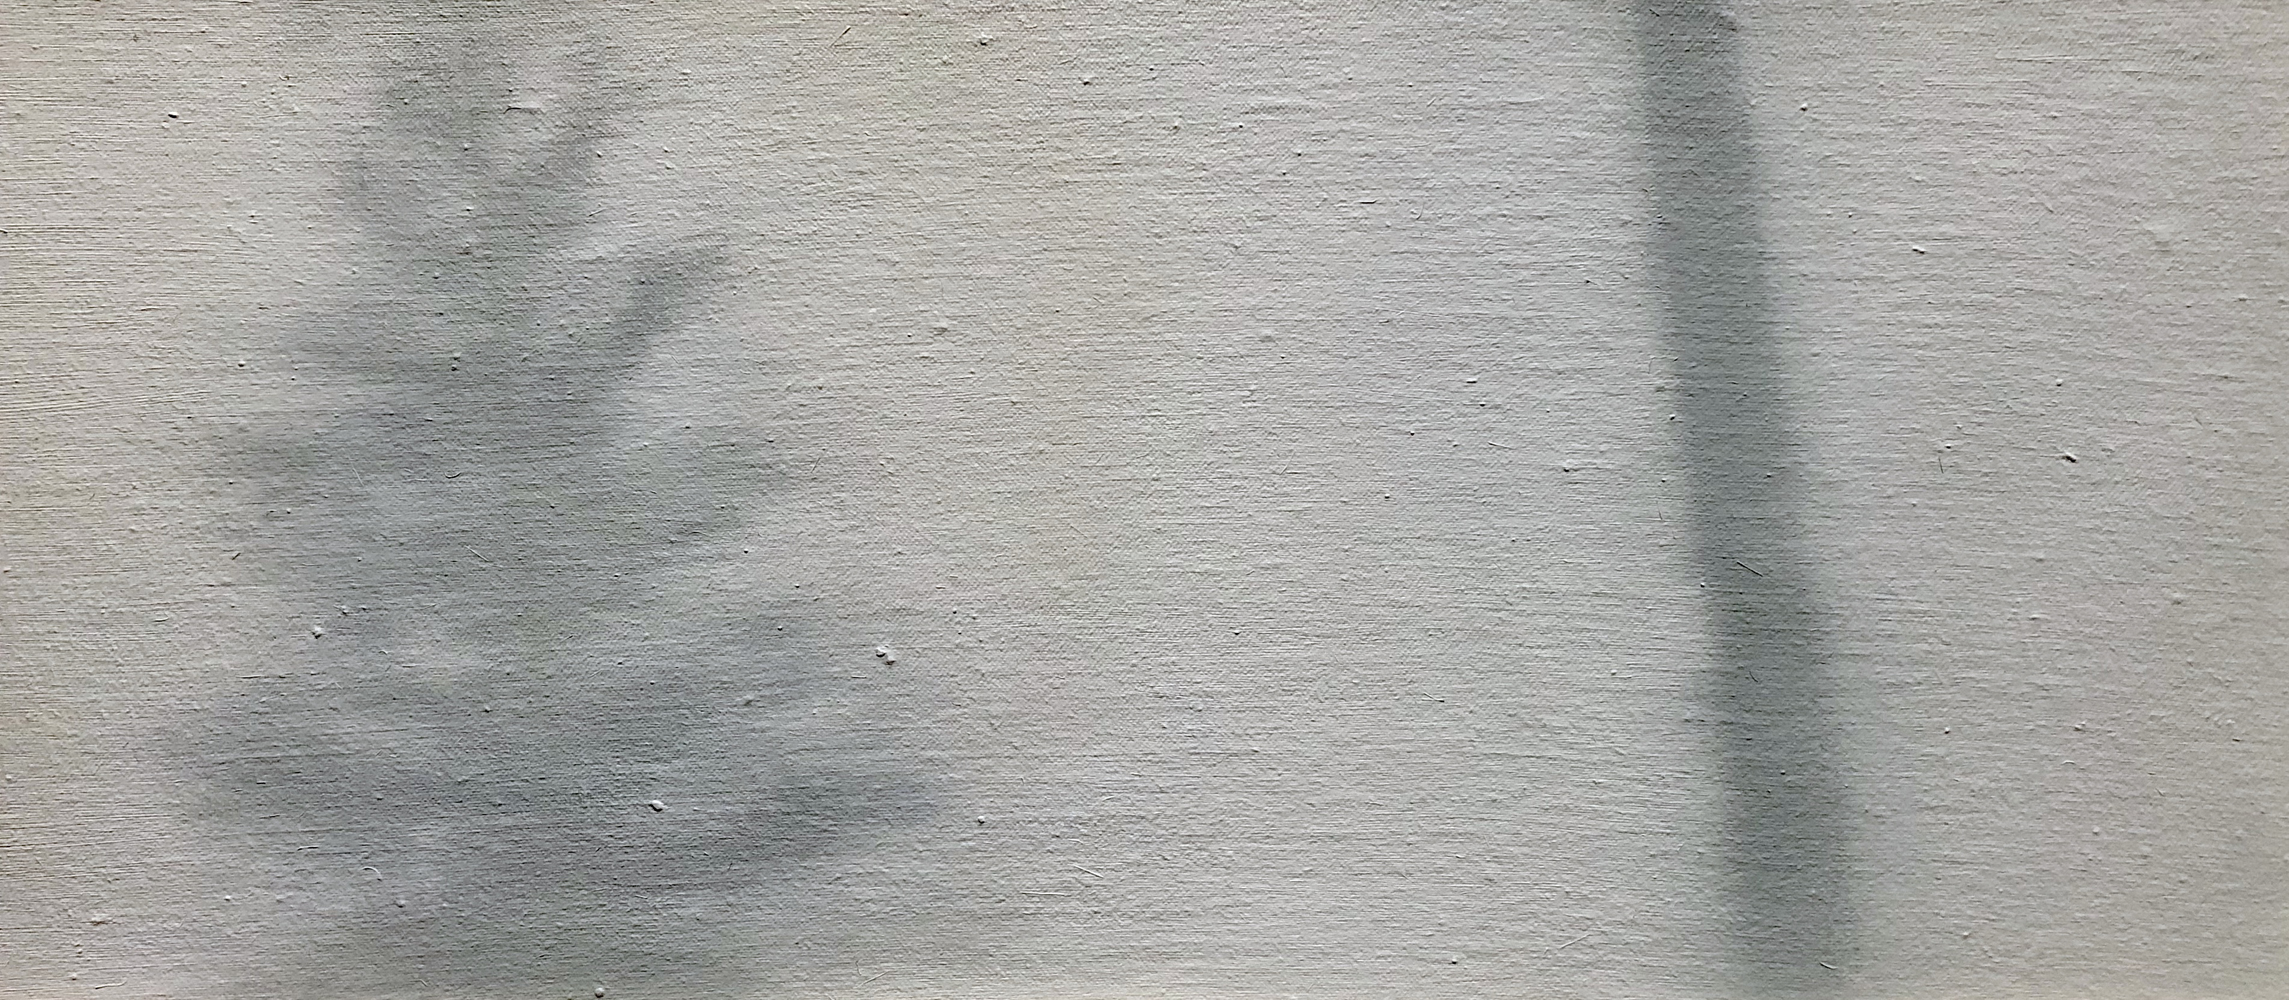 Linda Davidson, World's End #1, 2019, oil on cotton on panel, 10 x 22 inches, $850.